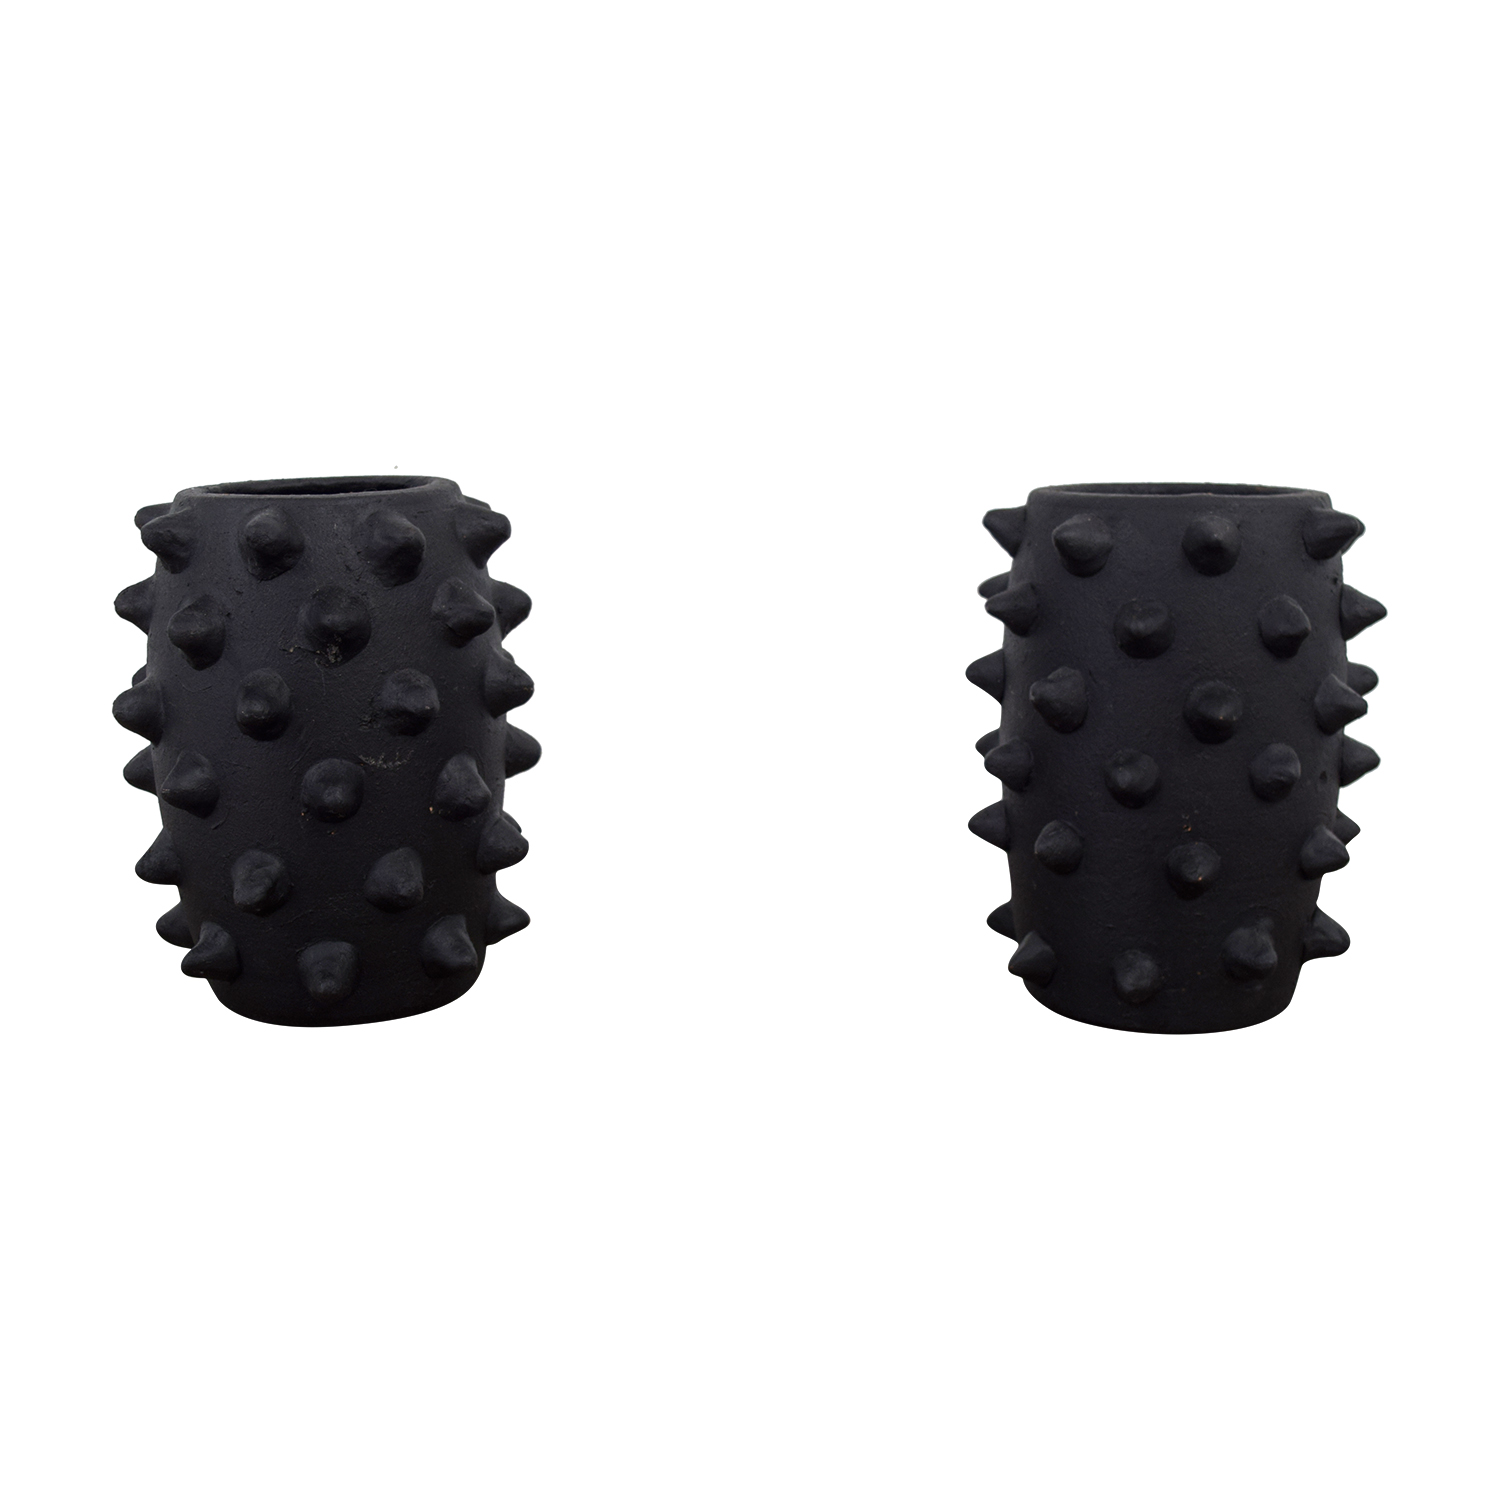 A & G Merch Black Spiked Vases sale